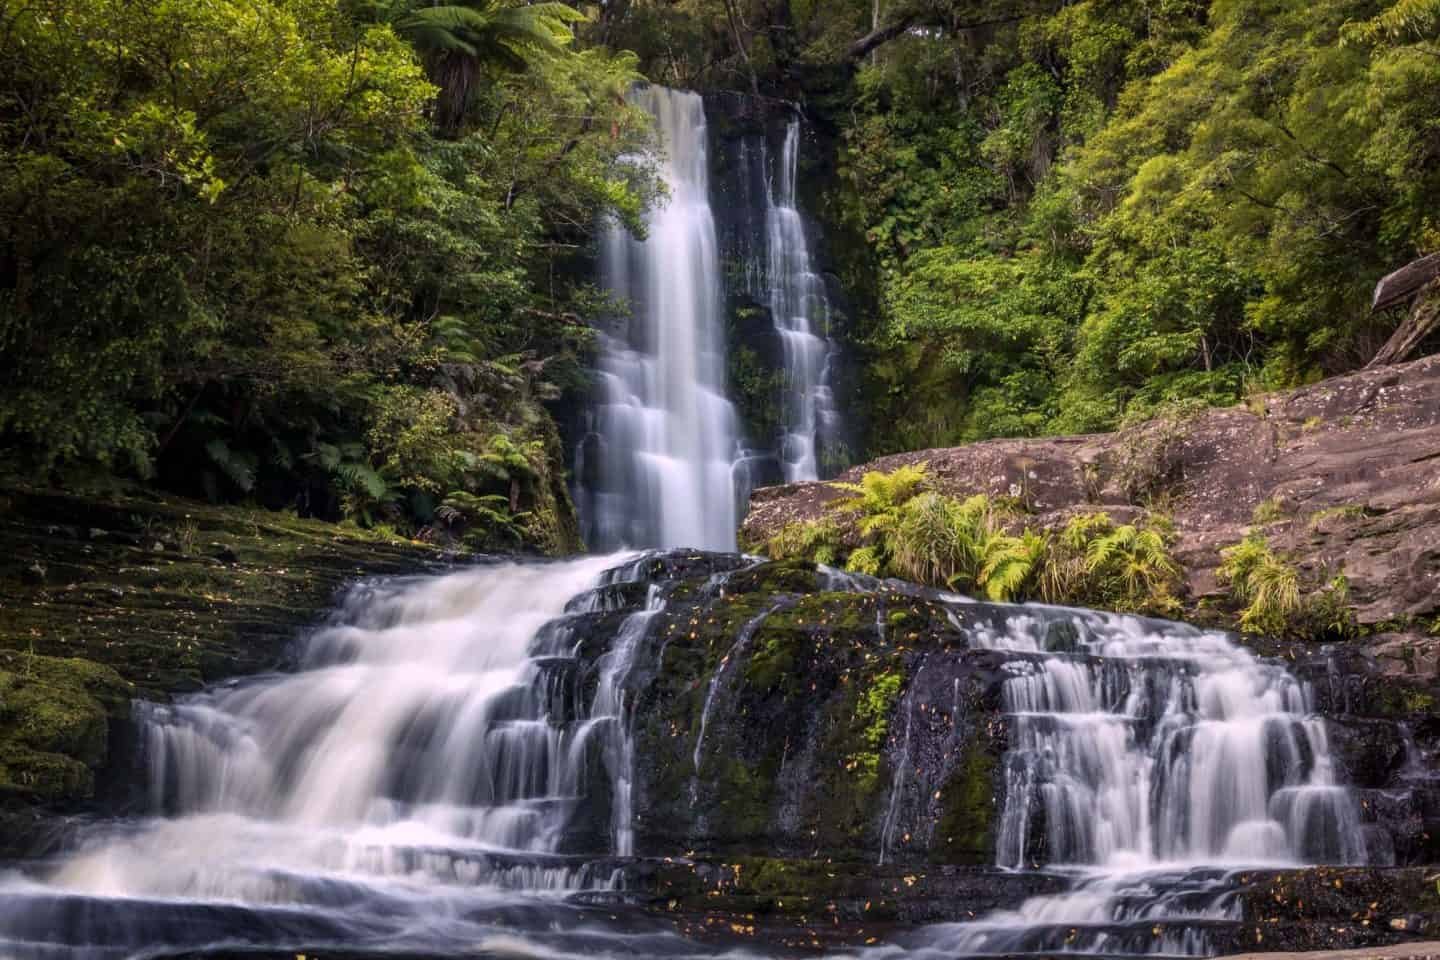 The cascading tiers of water at McLean Falls make it a favorite destination for waterfall photographers in New Zealand.